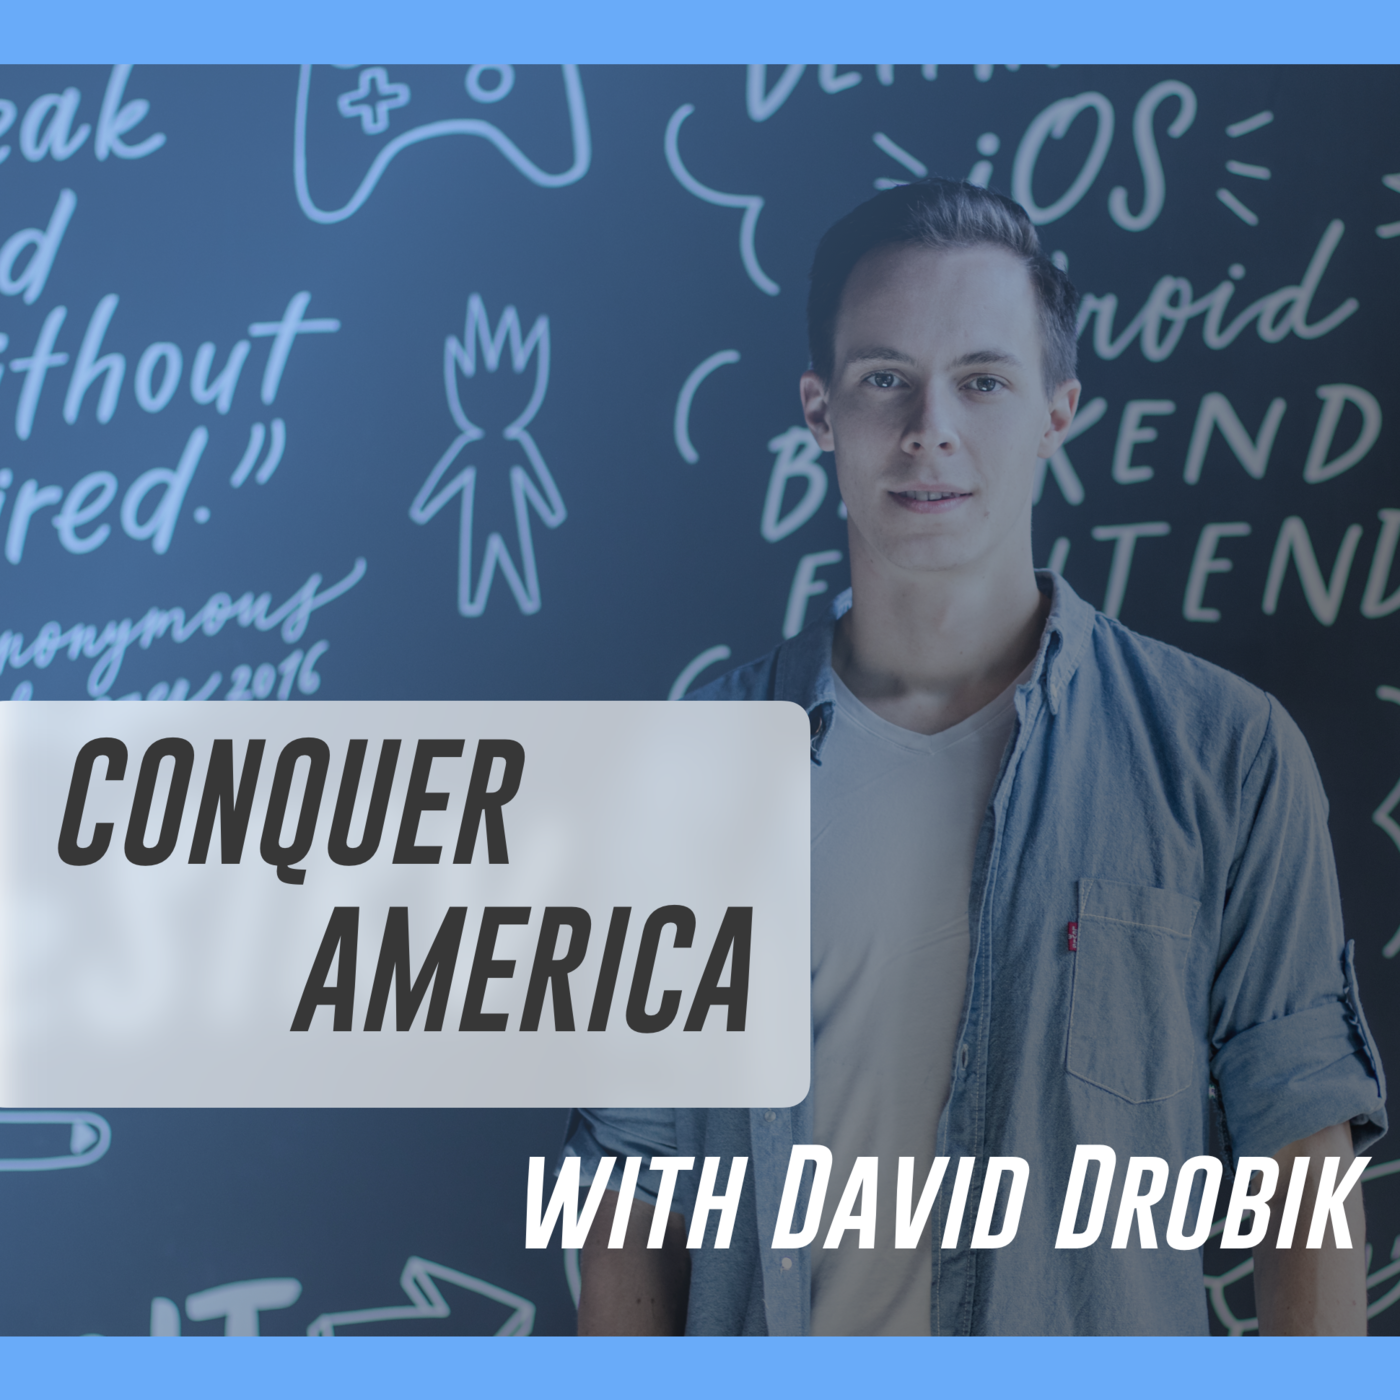 1 - About Conquer America: The Podcast for European Founders Conquering the American Market